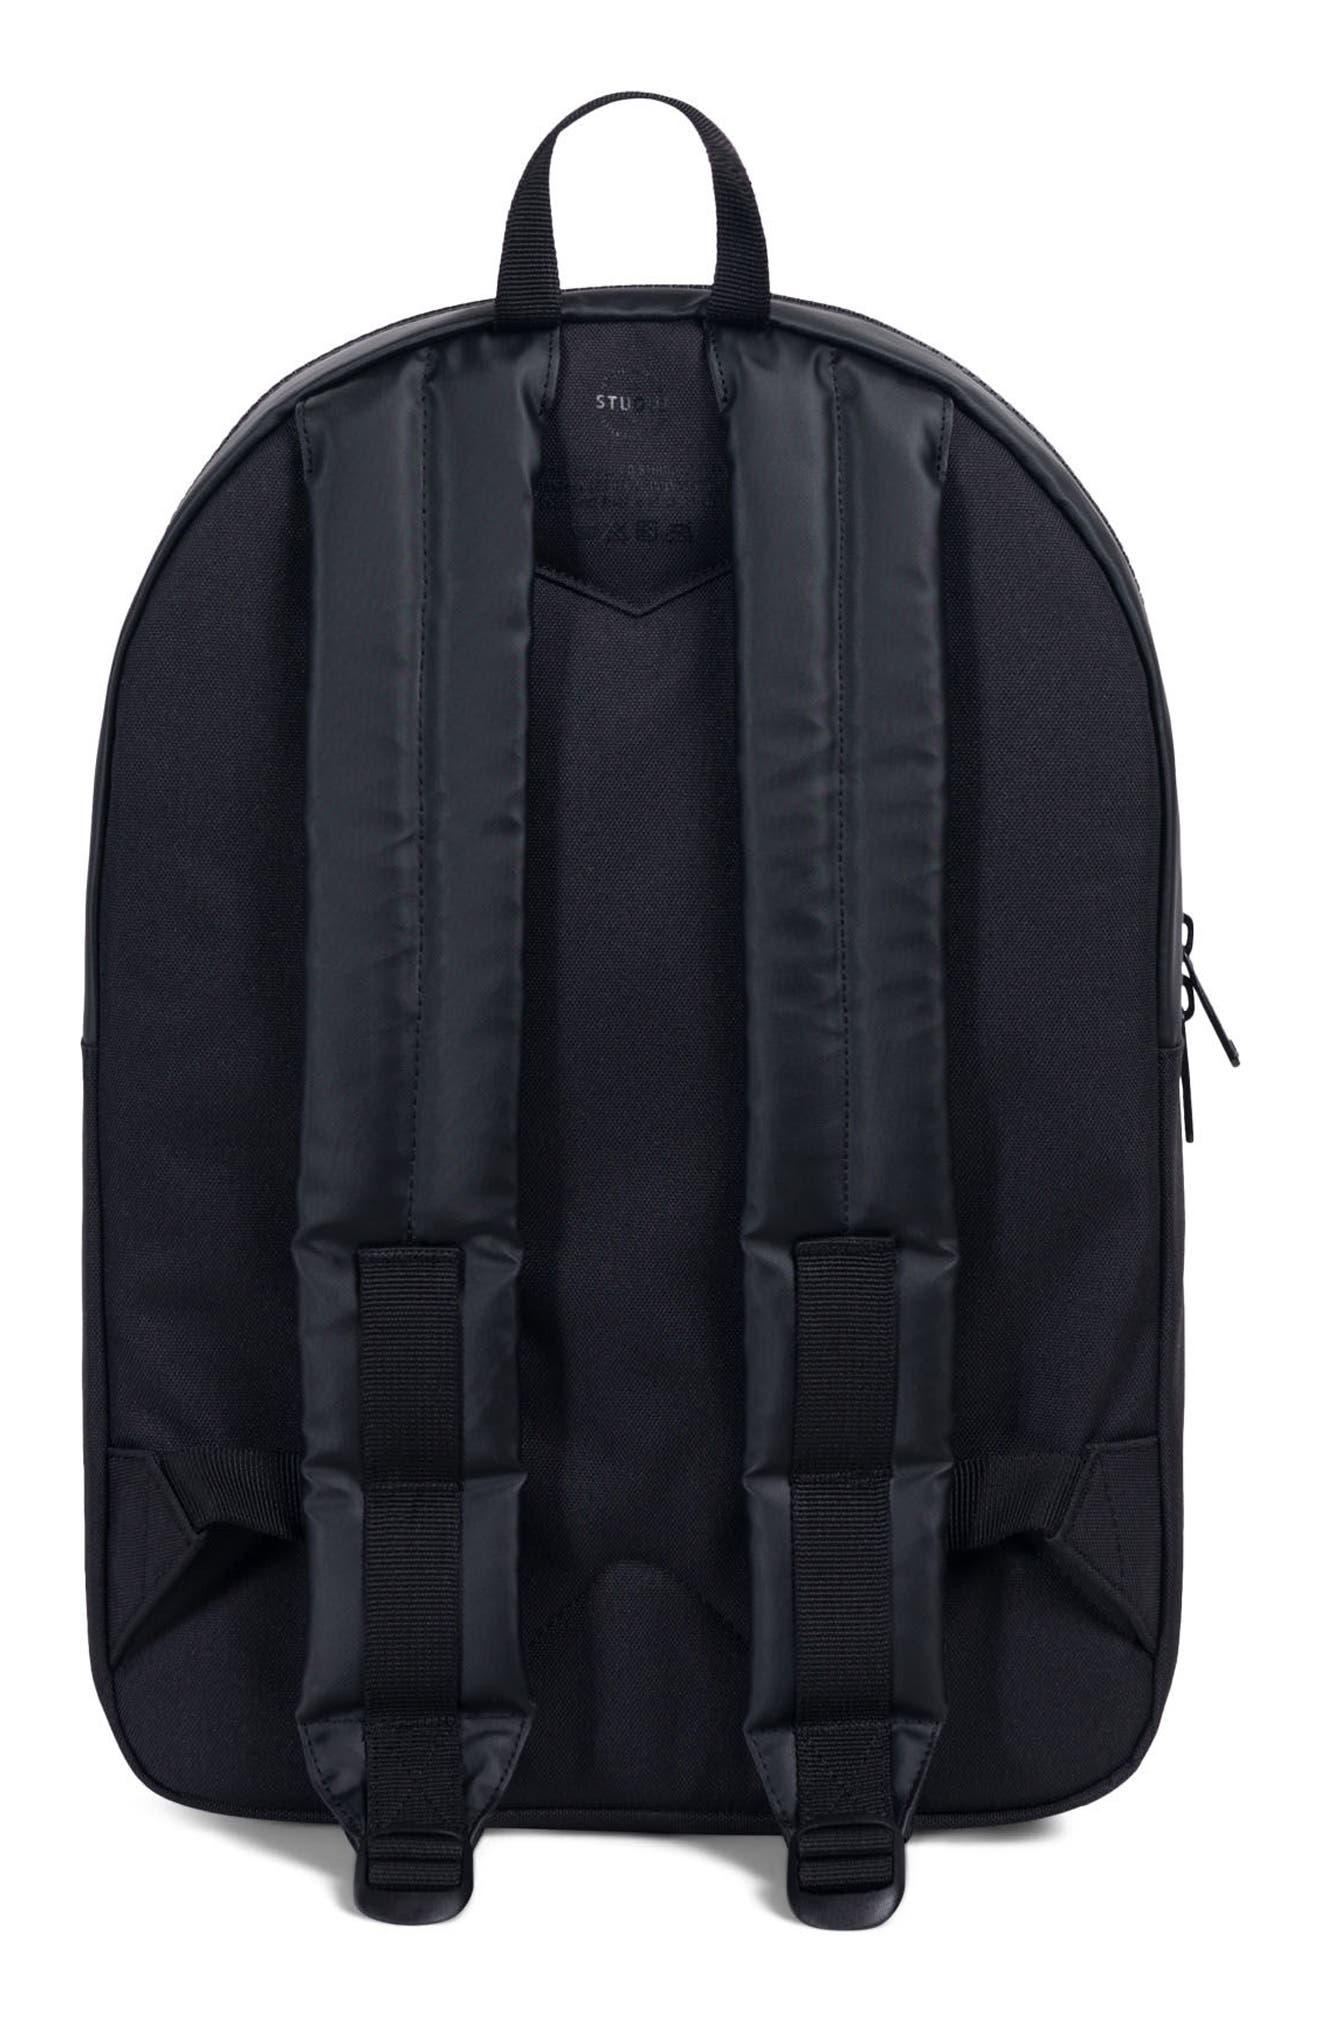 Winlaw Polycoat Studio Backpack,                             Alternate thumbnail 4, color,                             001